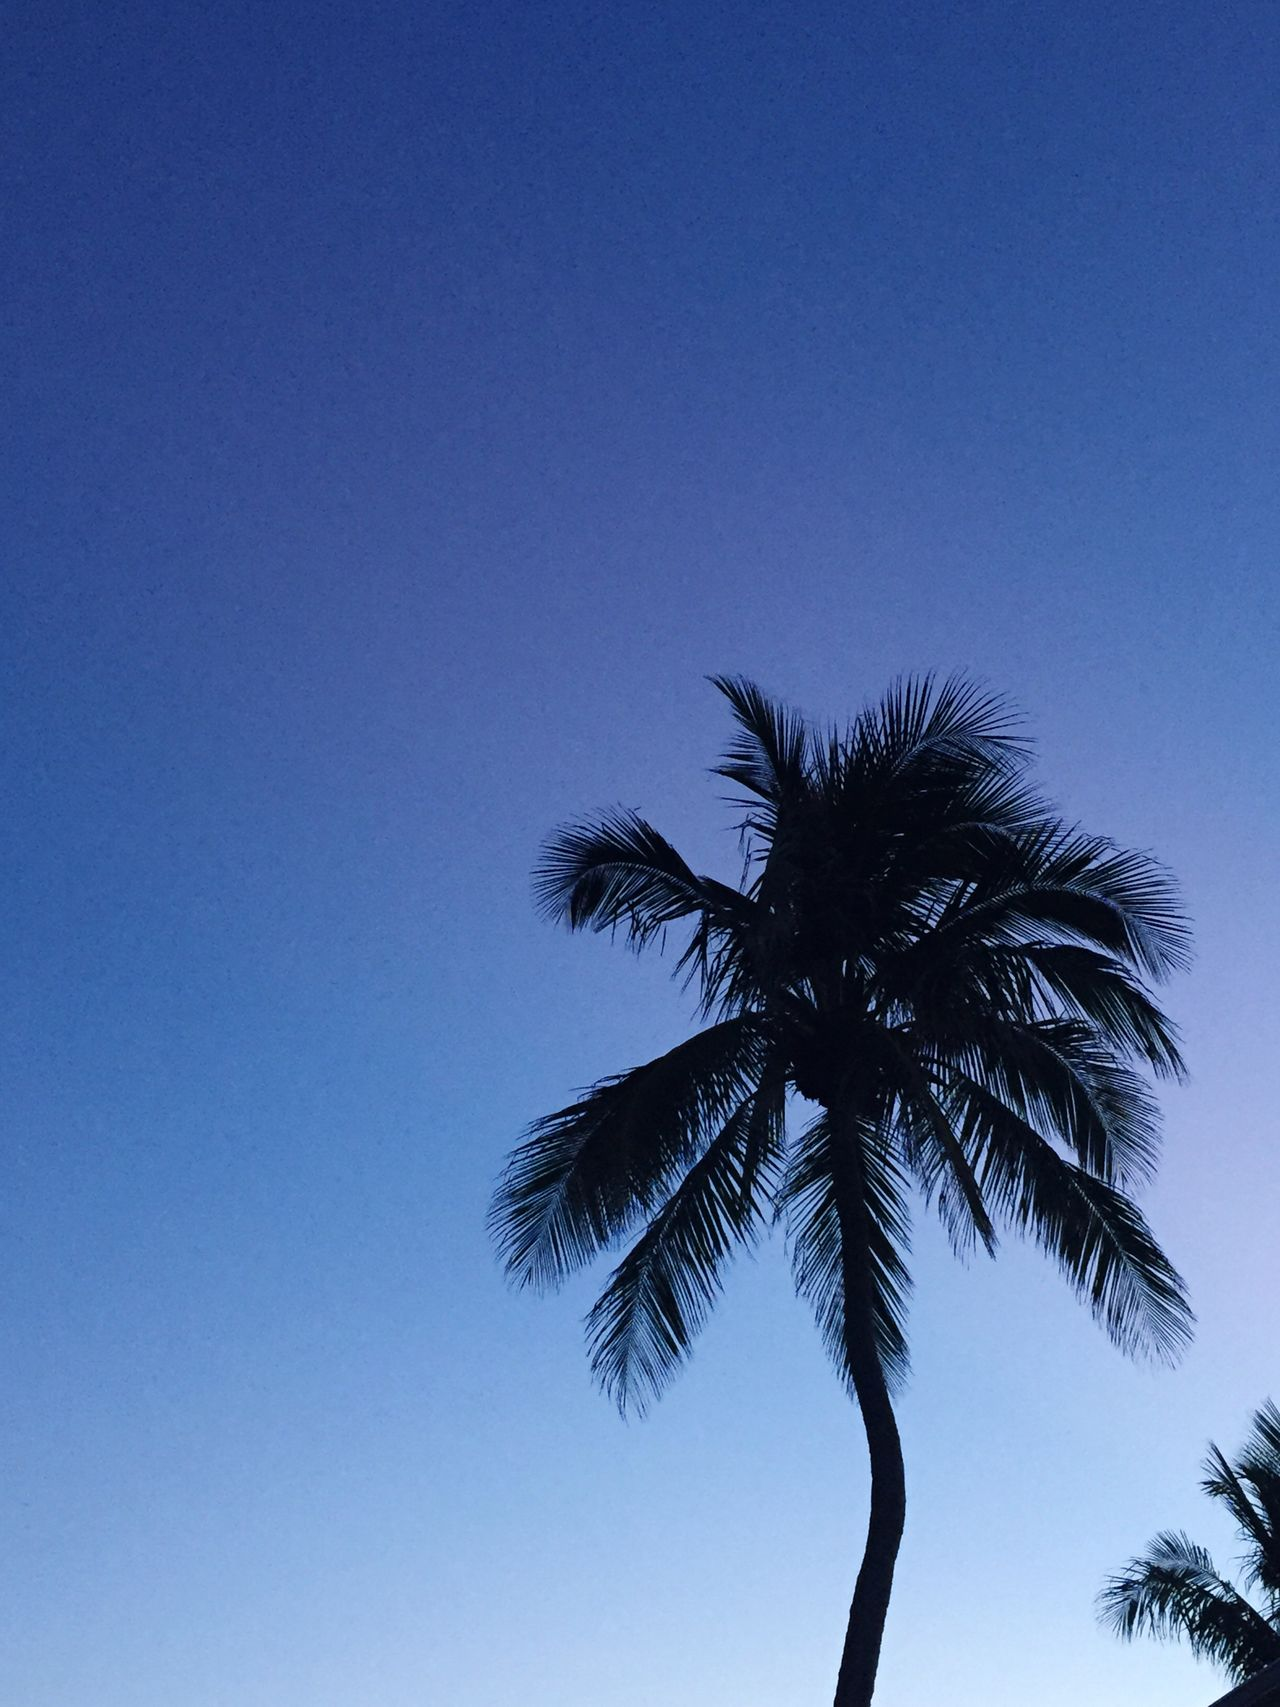 Palm Tree Tree Low Angle View Clear Sky Blue Copy Space Scenics Beauty In Nature Nature Tree Trunk Tranquility Growth No People Silhouette Summer Day Outdoors Sky crooked palm tree and blue sky Blue Sky Palm Tree Tropical Climate Tropical Backgrounds